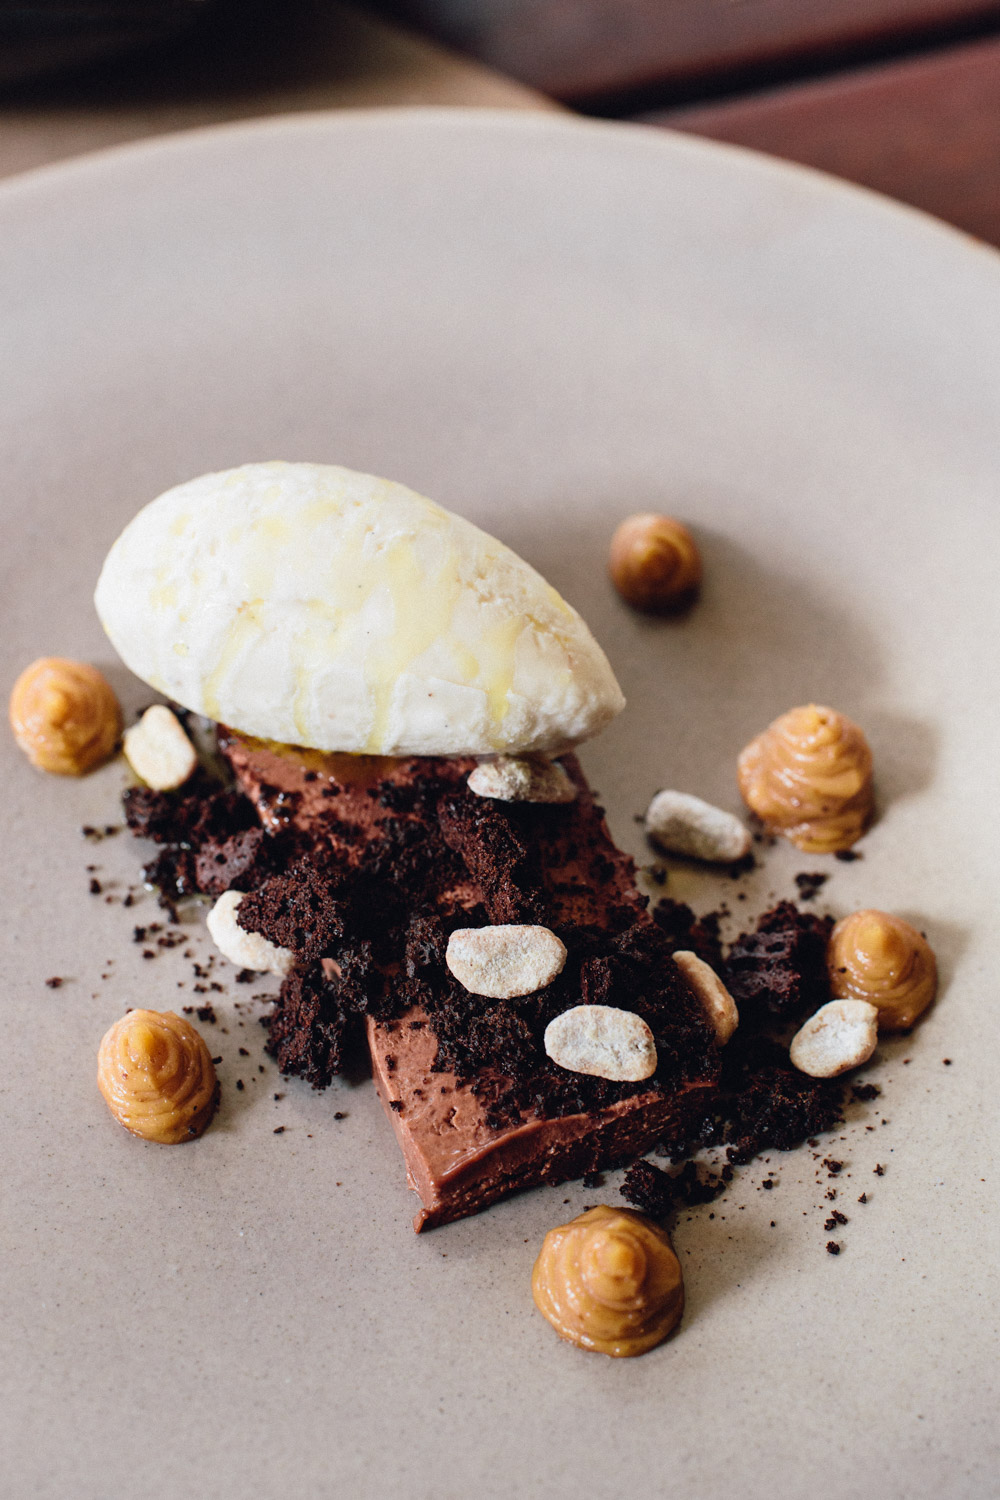 Chocolate terrine with roasted peanuts, vanilla ice cream, dehydrated chocolate cake crisps, and dulce de leche. Until el Chato expands their kitchen with their own ice cream machine, they currently serve artisanal ice creams also made by Selva Nevada.